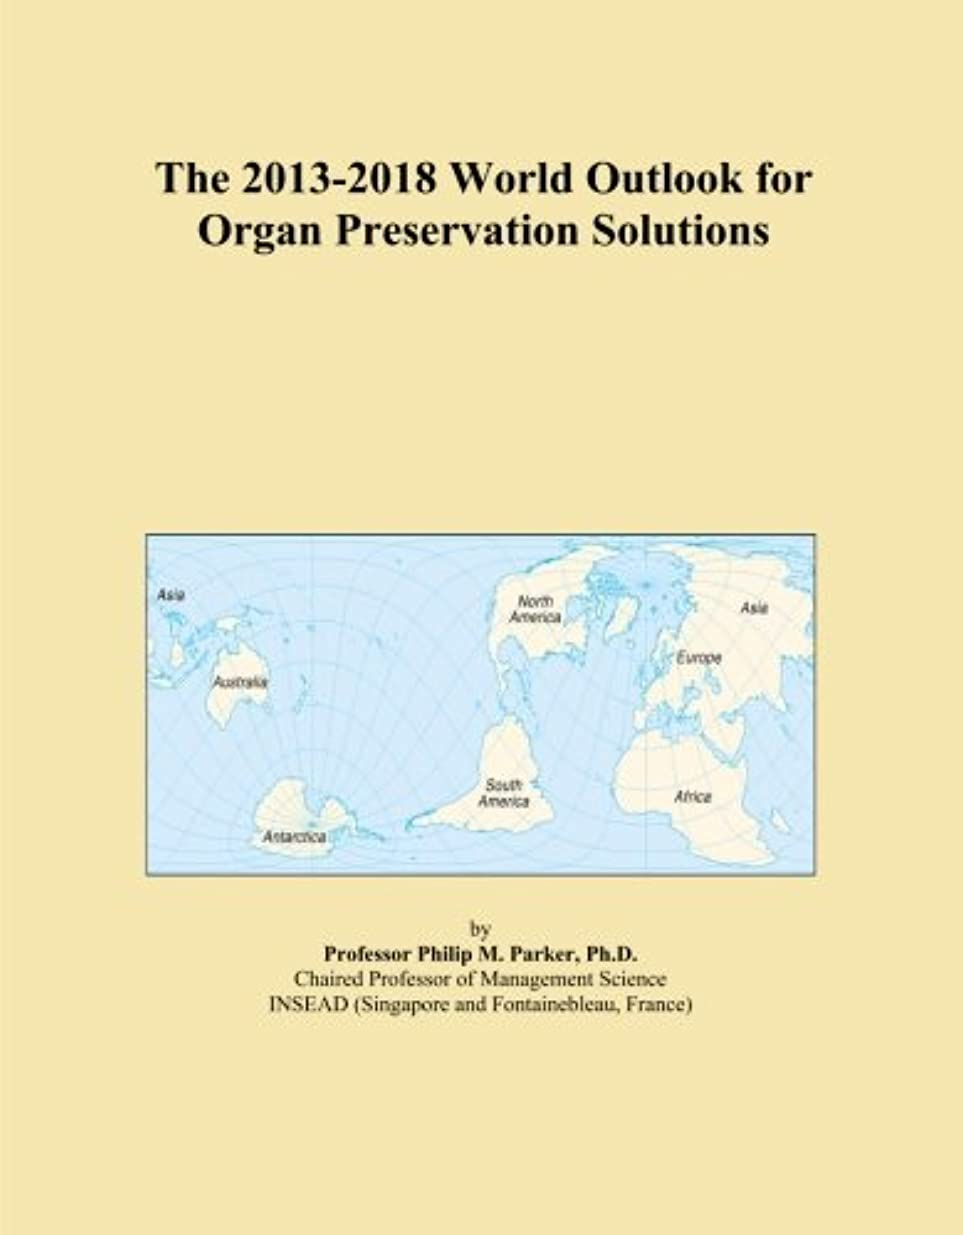 The 2013-2018 World Outlook for Organ Preservation Solutions